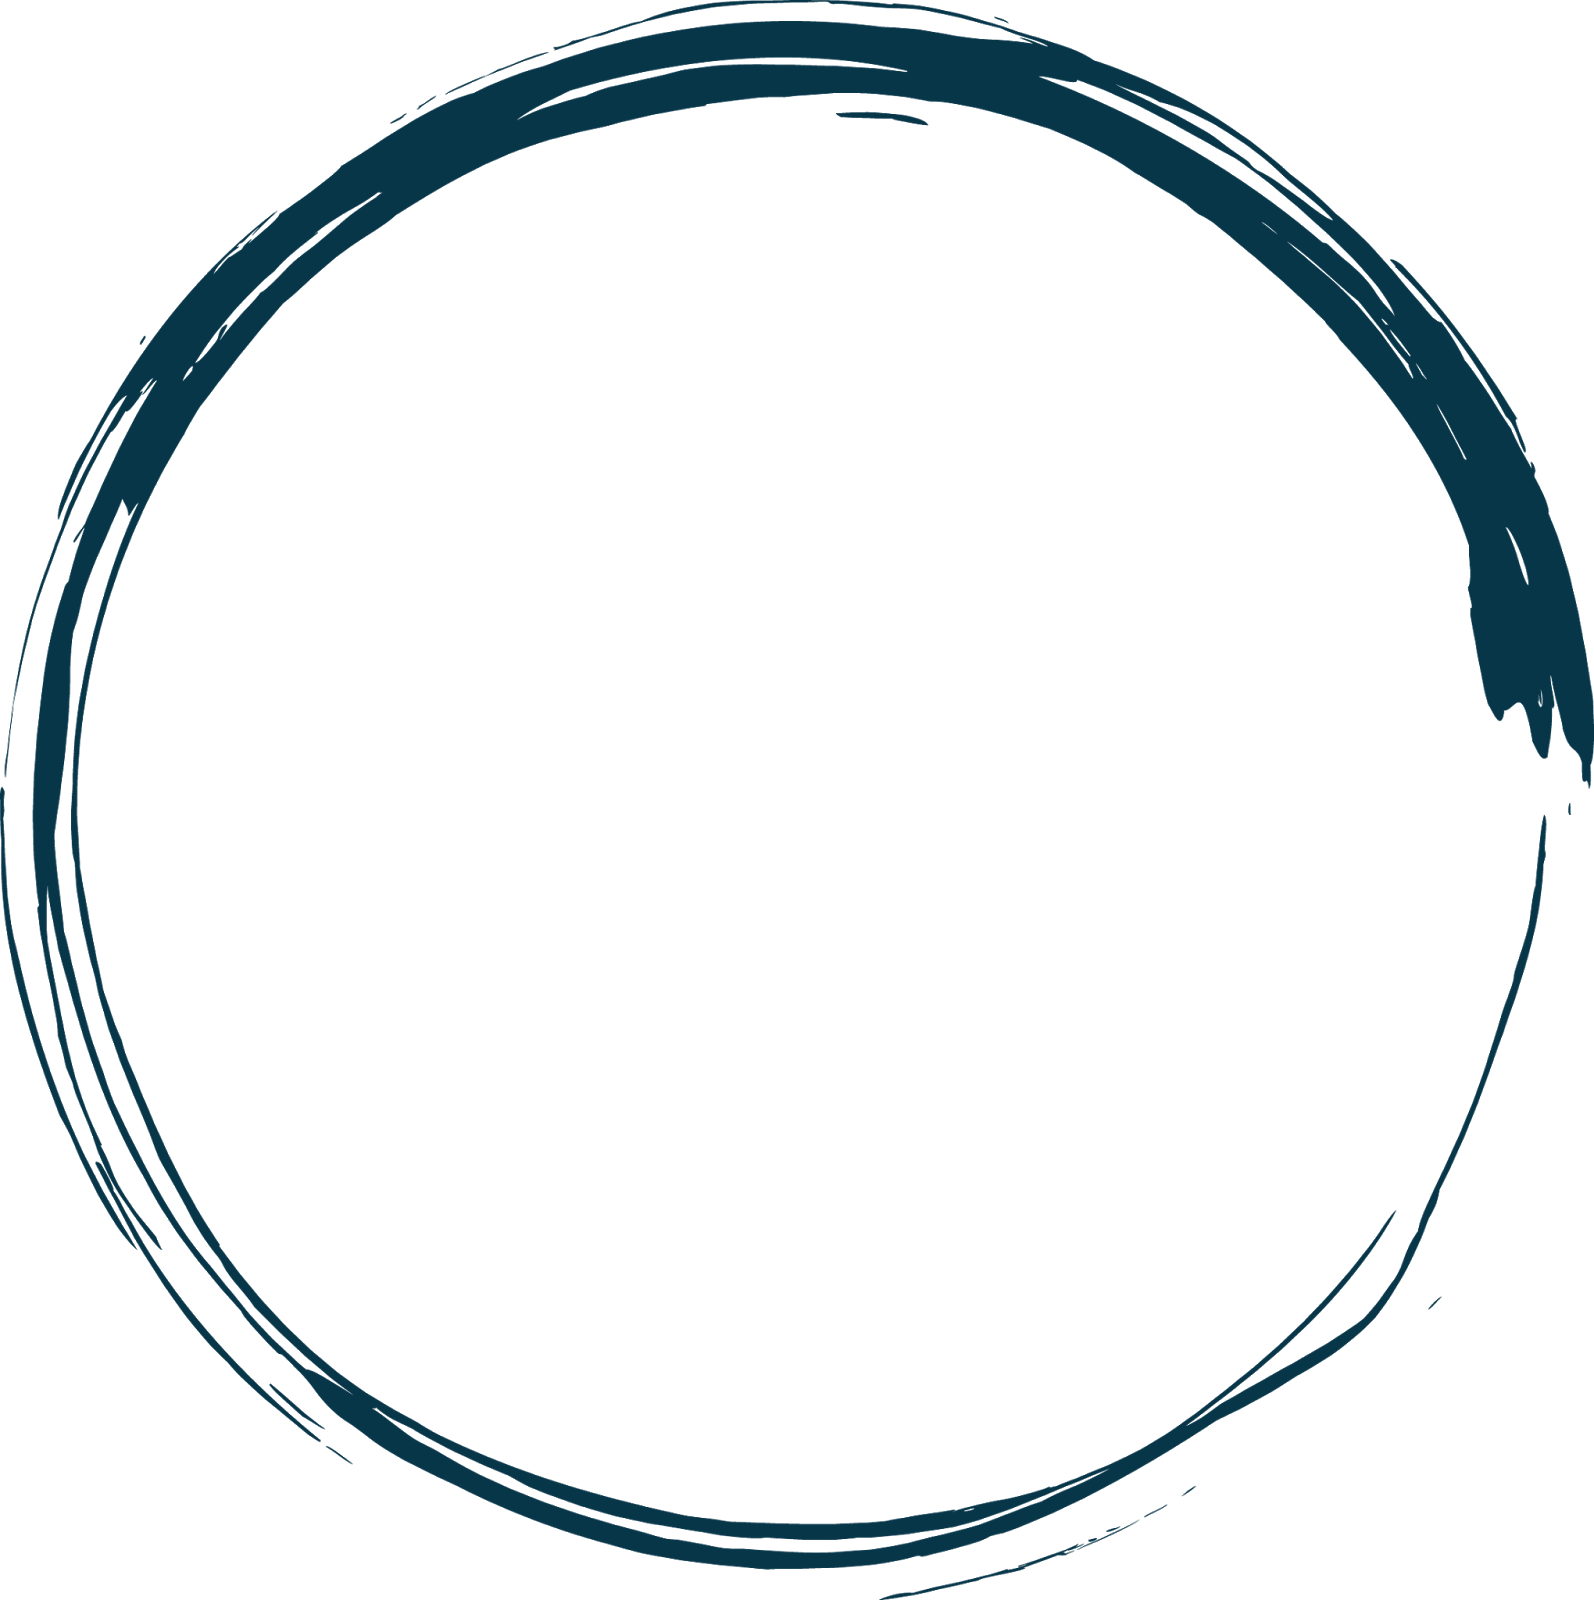 Circle PNG Picture 21498